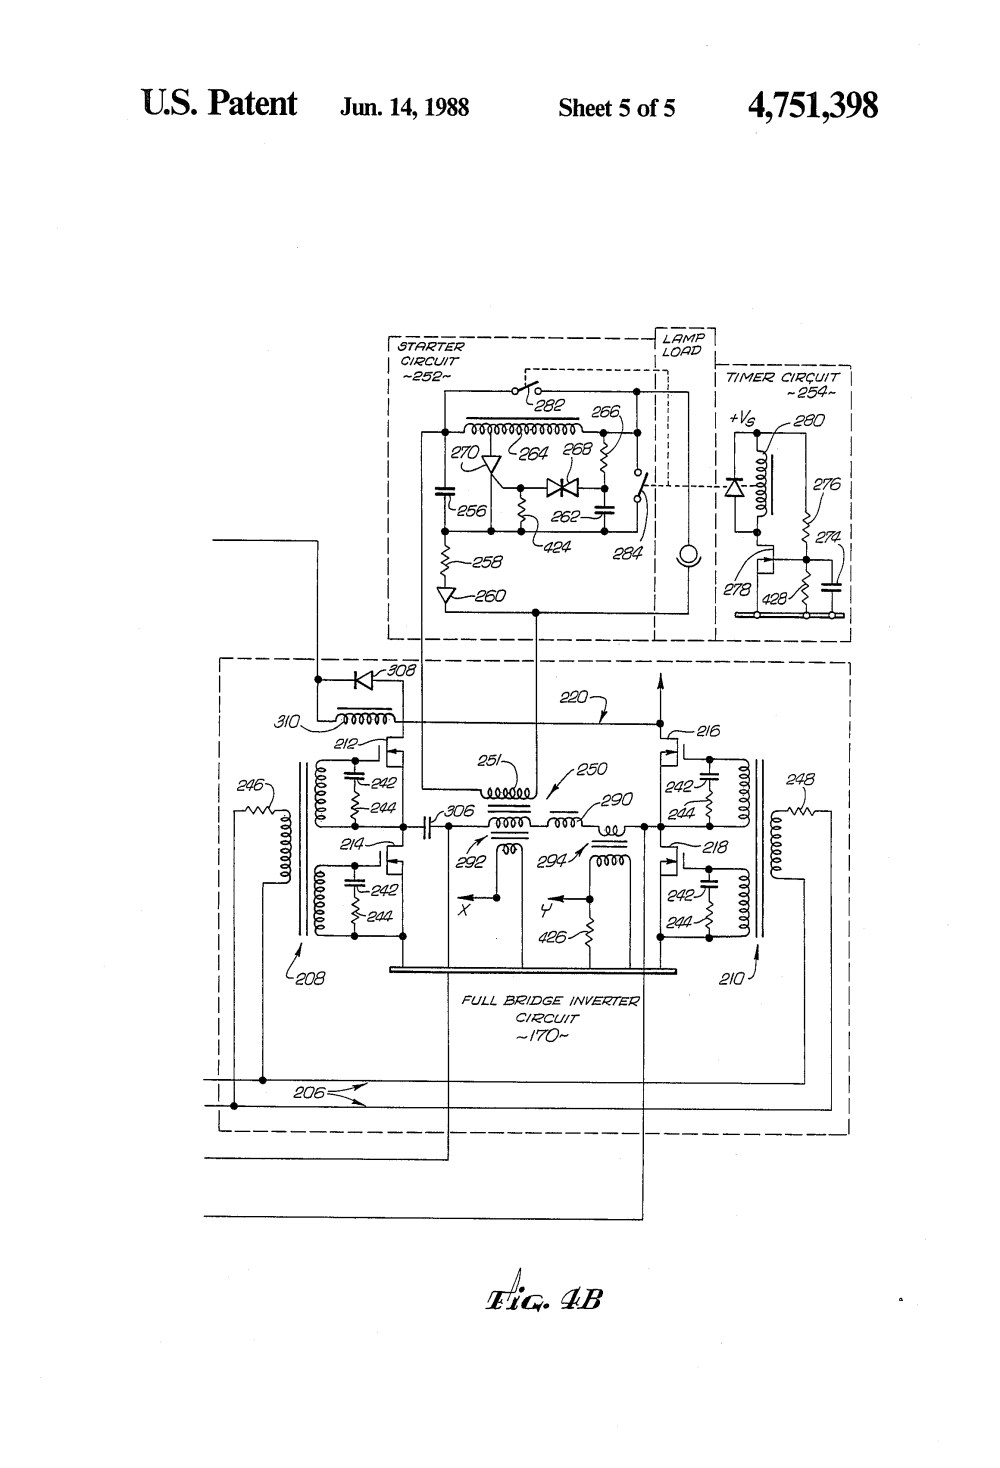 medium resolution of bodine led wiring diagram wiring diagram blogs rh 14 10 5 restaurant freinsheimer hof de bodine b50 wiring diagram bodine ballast wiring diagram